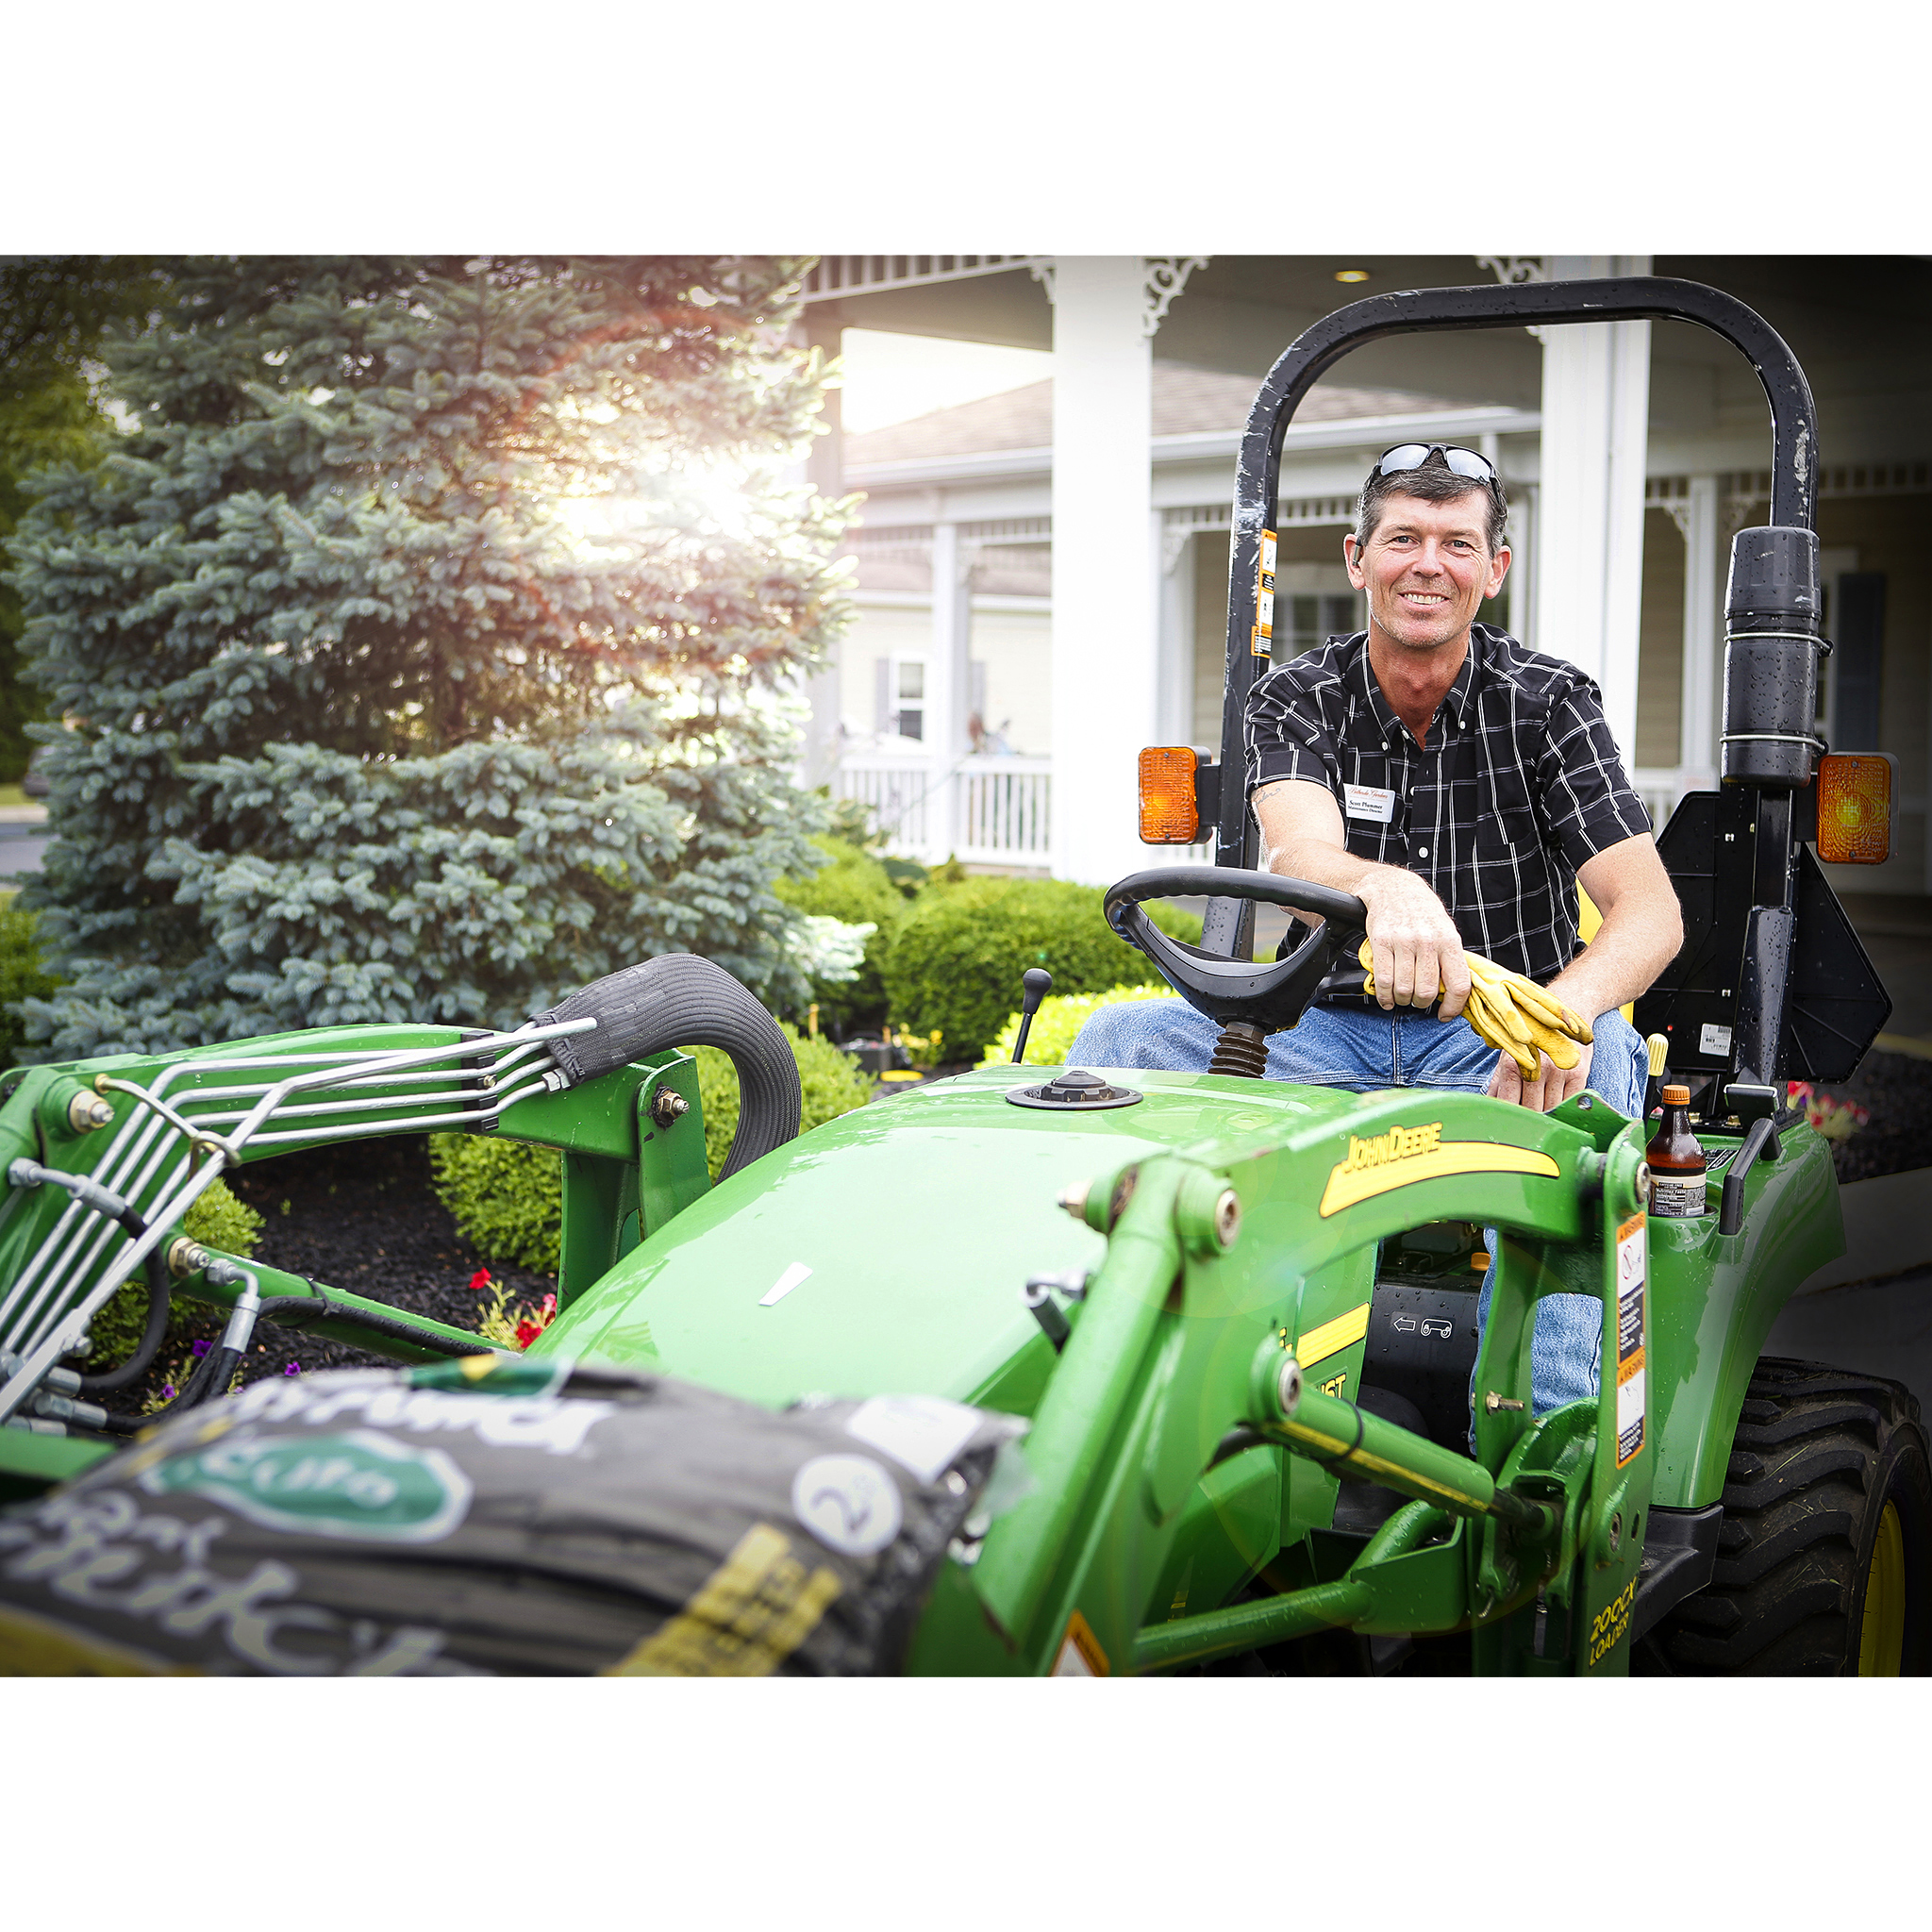 Man on John Deere tractor for website by Craig Anderson